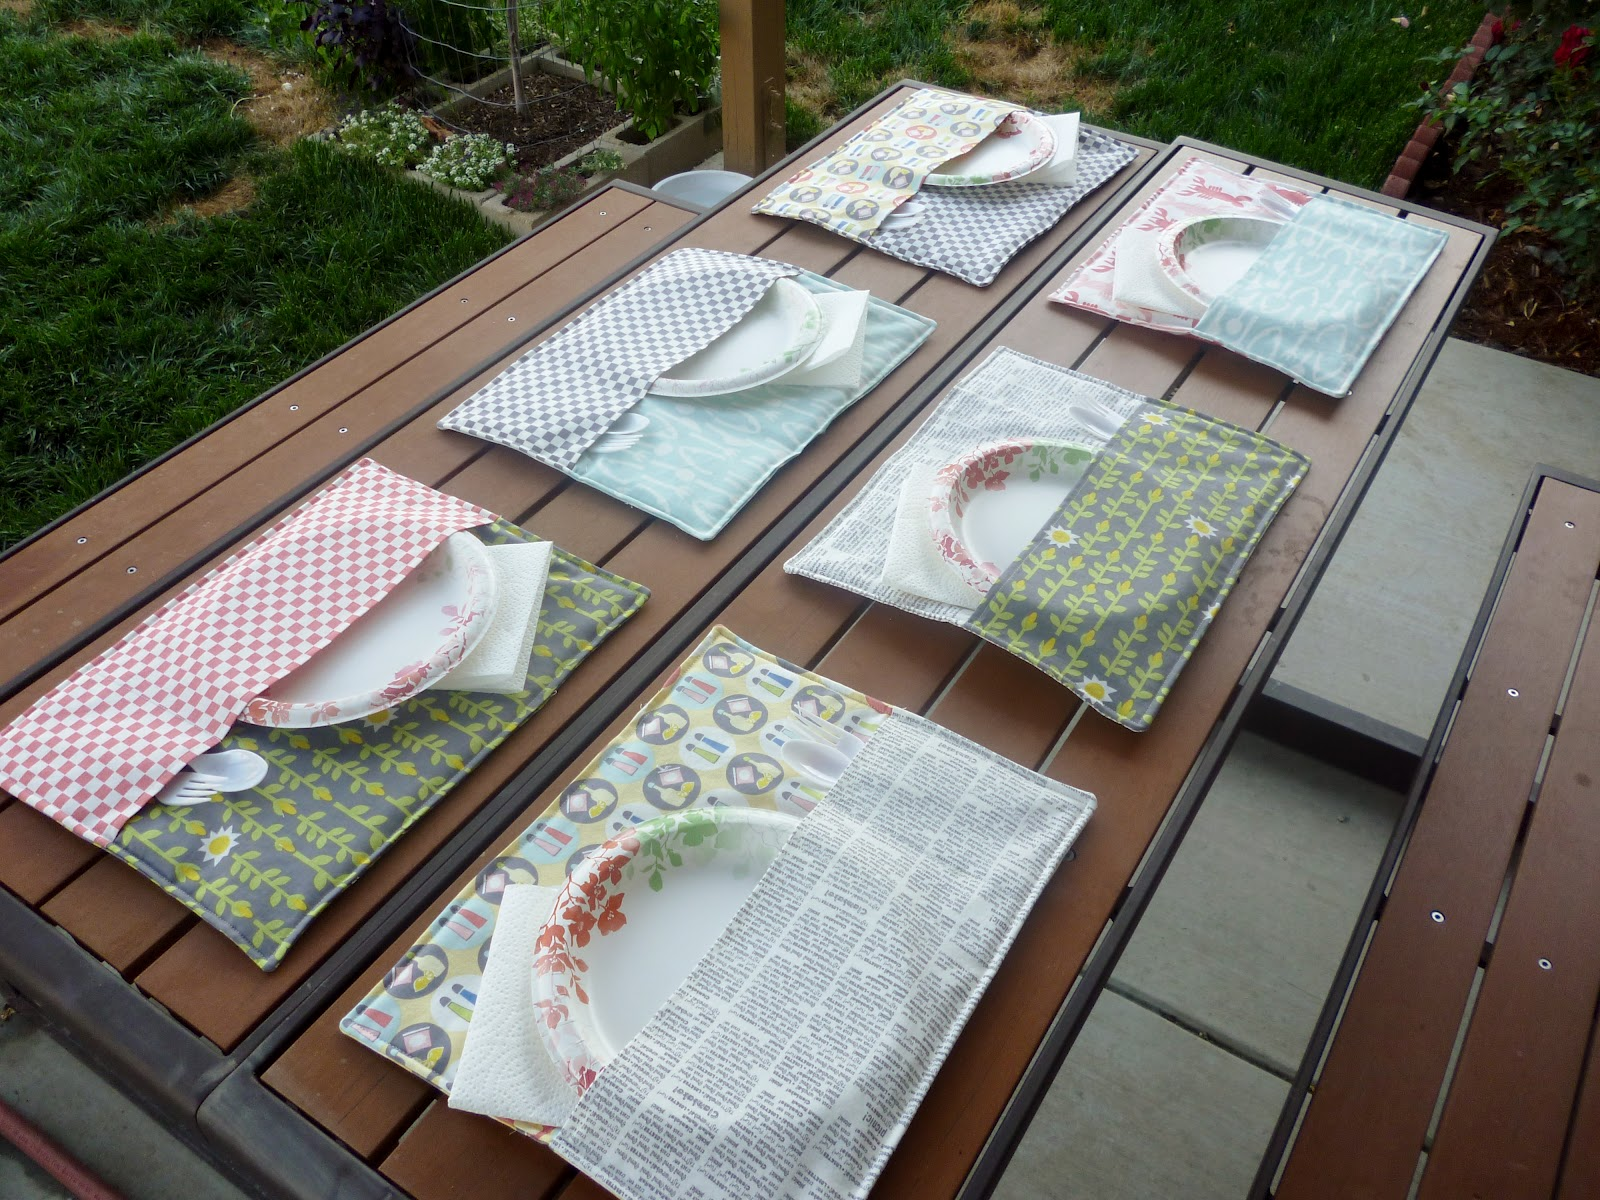 How to make dining table mats at home - Patio Place Mats